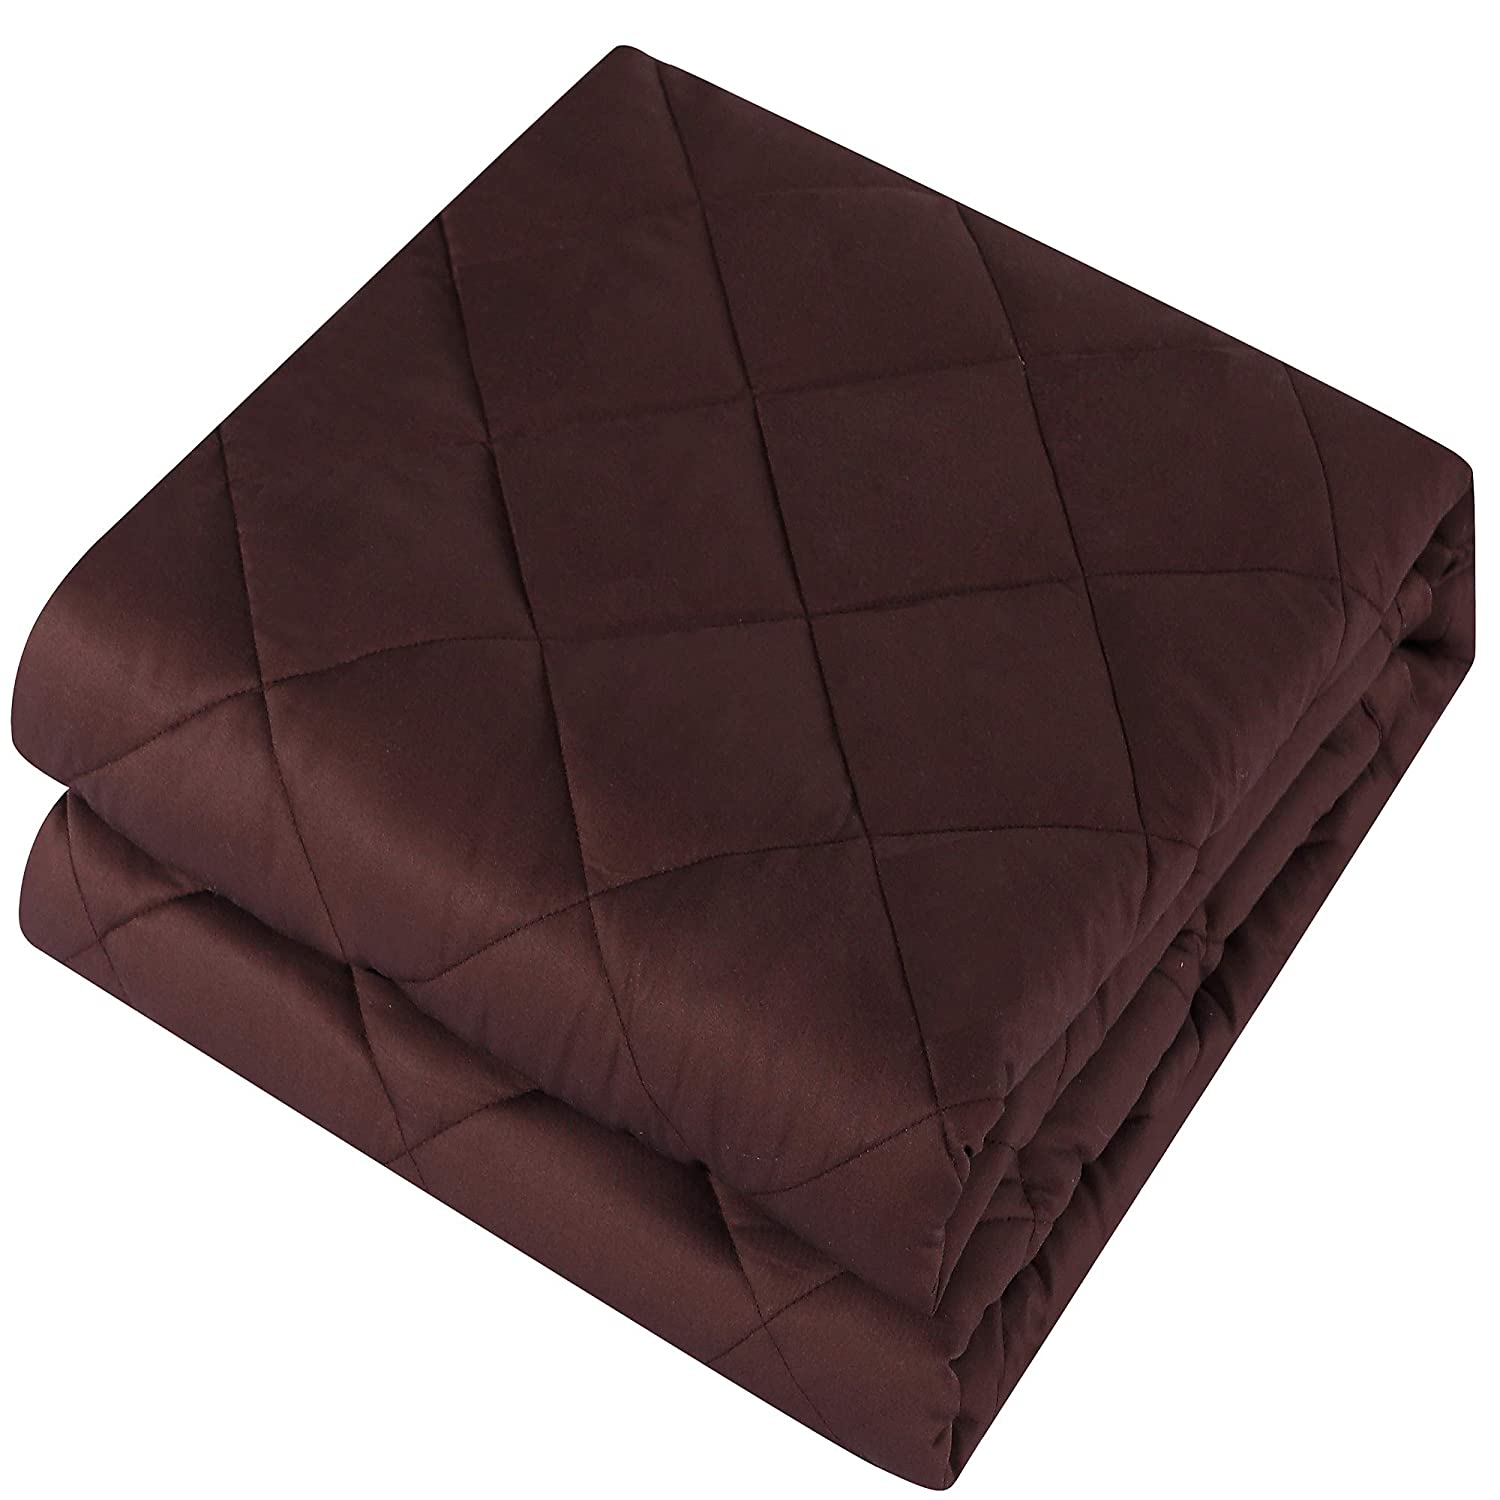 ,Heavy Blanket,100/% Cotton Material with Glass Beads 12 lbs, 48x72, Twin Size Weighted Blanket Pro for adult